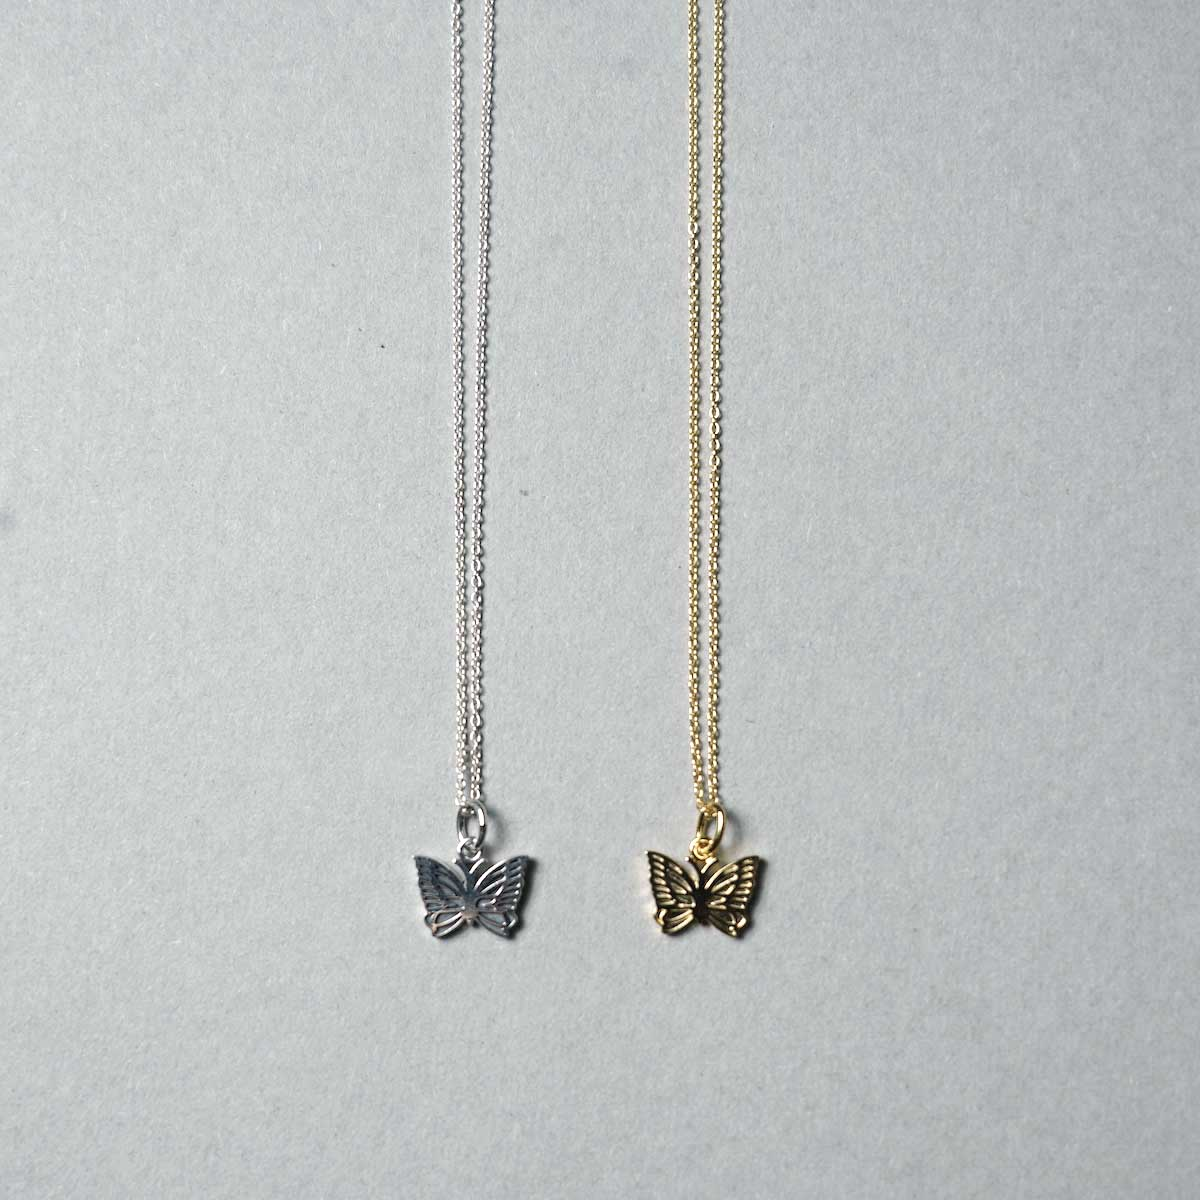 Needles / Pendant (Gold Plate / 925 Silver)正面